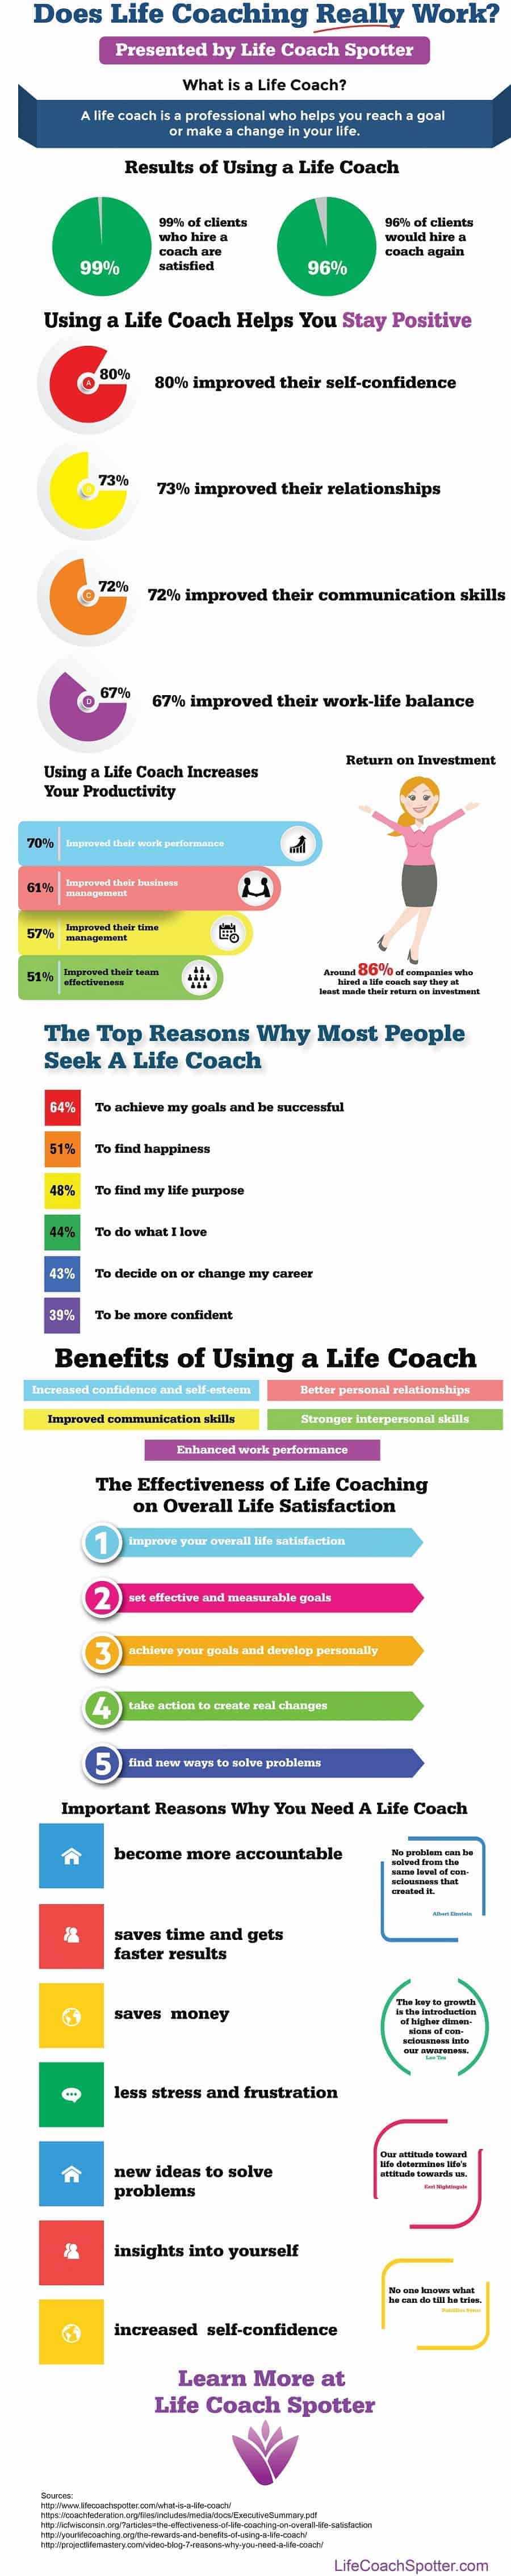 how life coaching works infographic